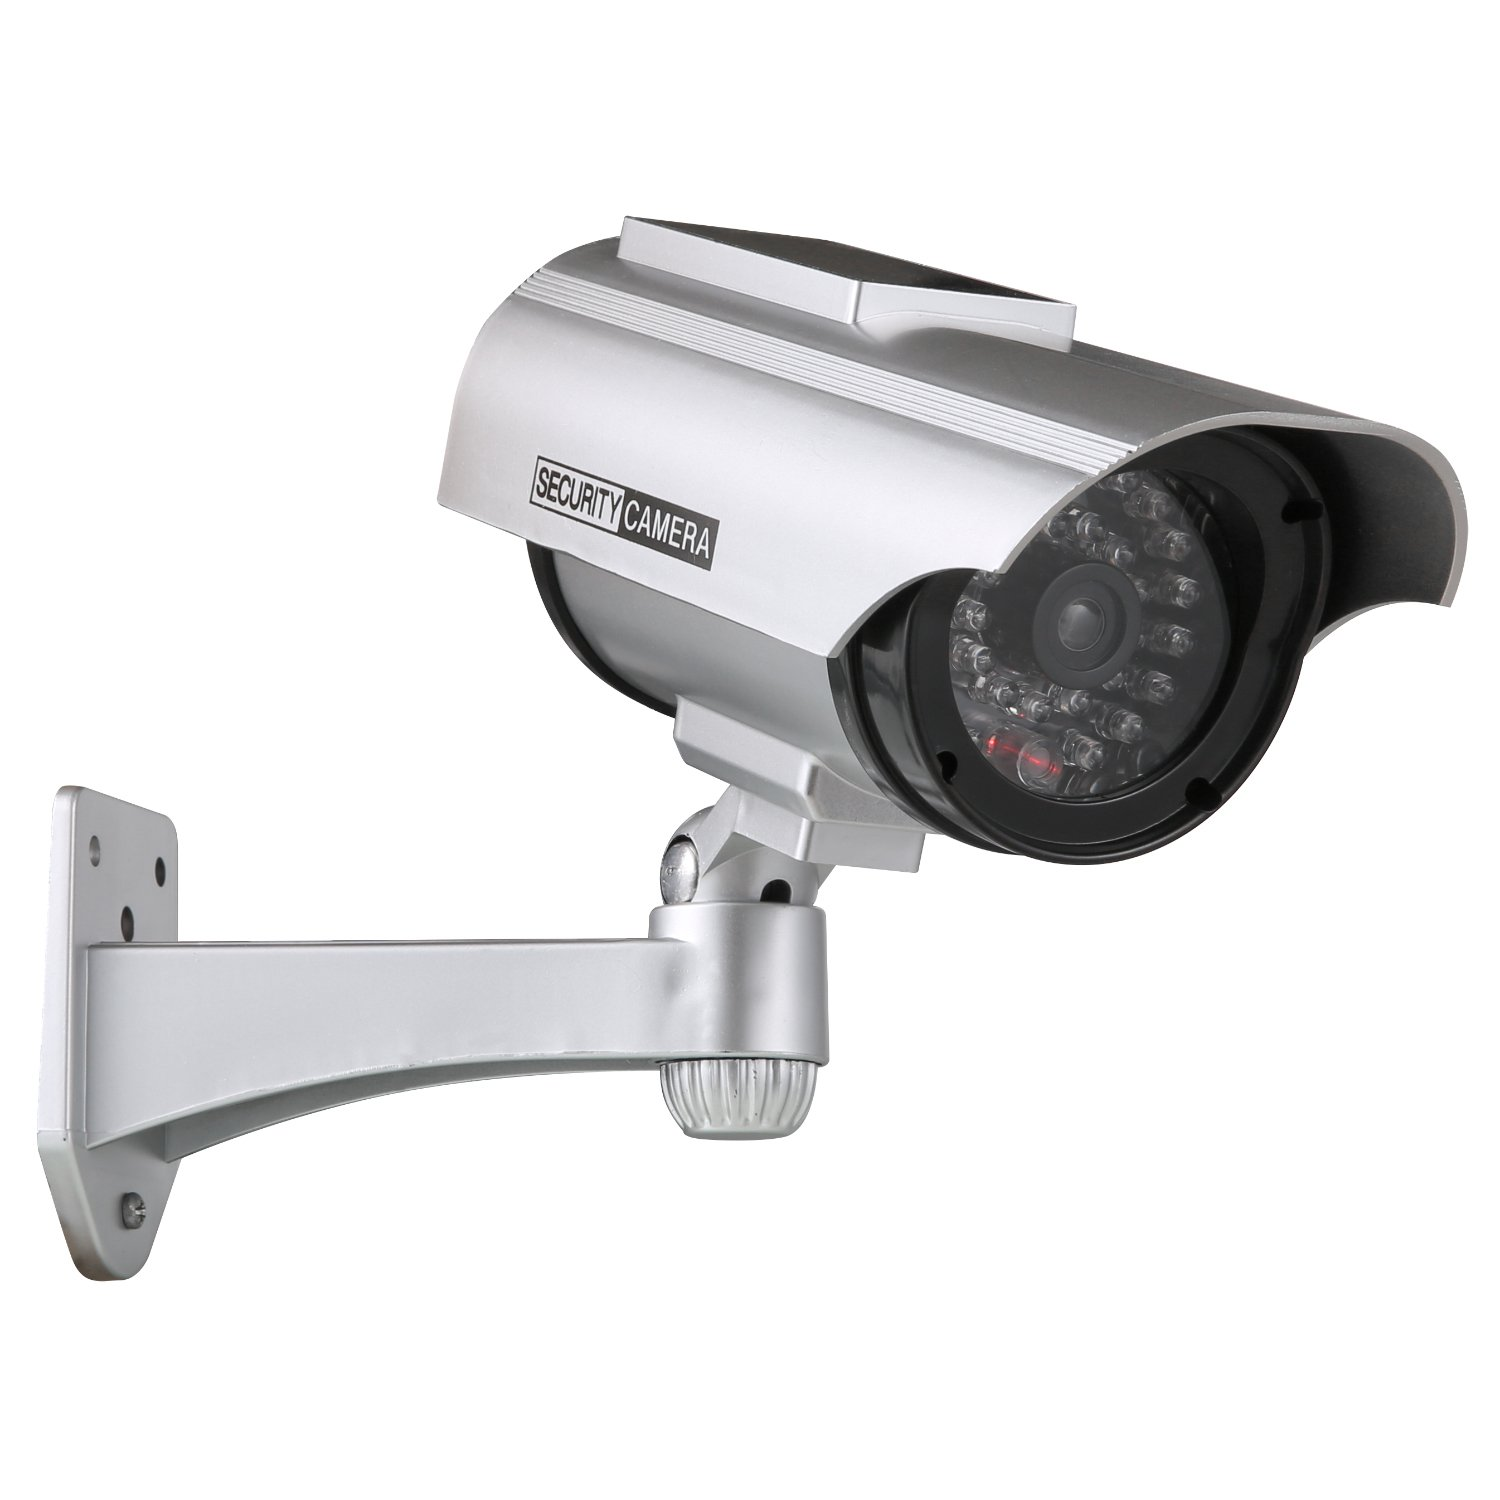 ANNKE Solar Powered Dummy Fake Security Camera with Flashing Red LED for Indoor and Outdoor use, IP56 Weatherproof